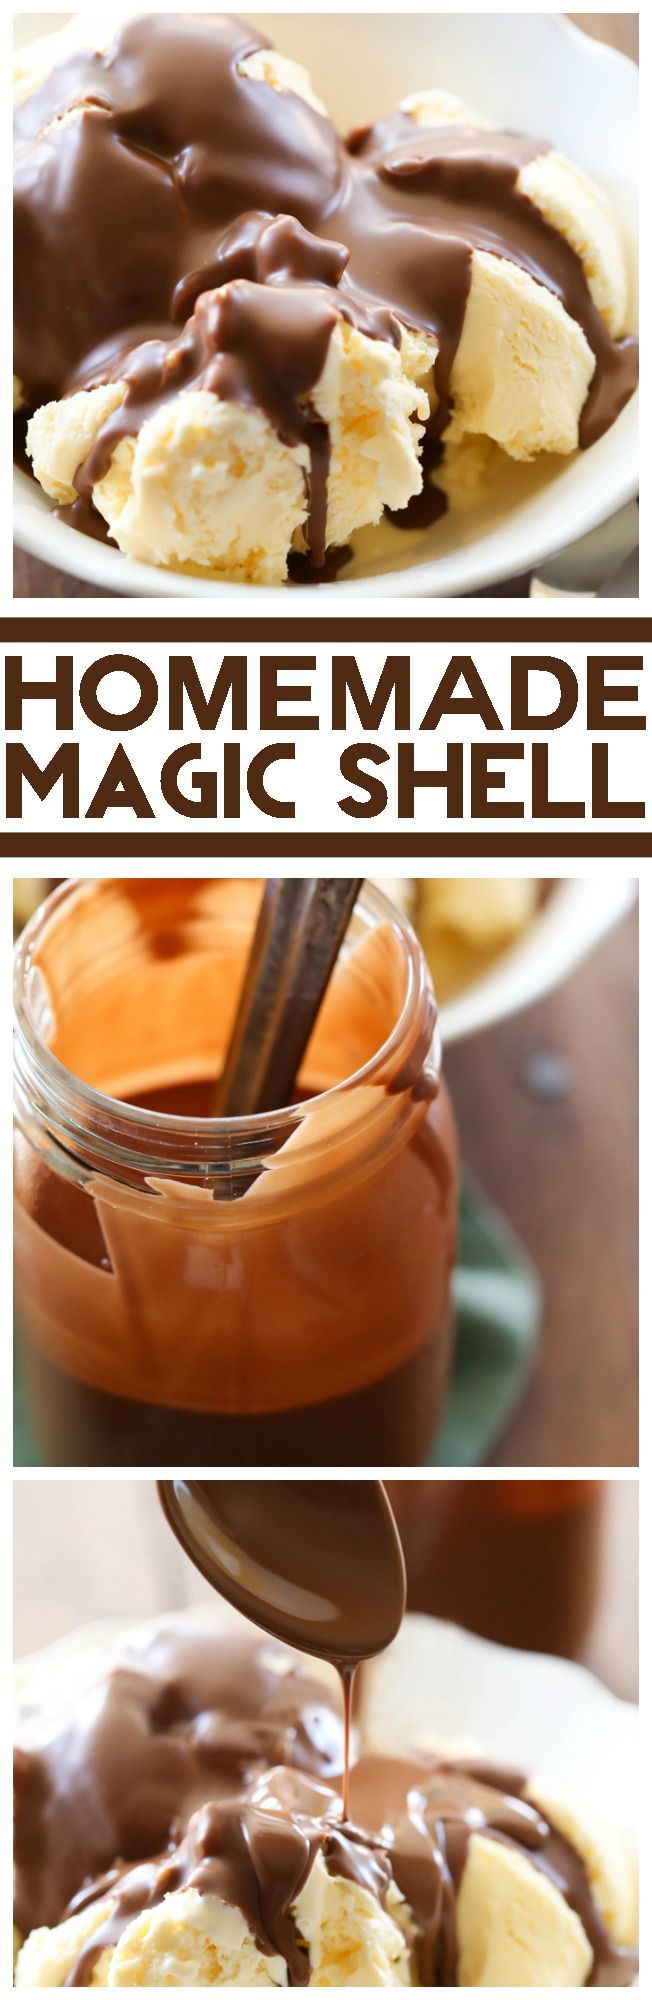 Homemade Magic Shell... you are 2 simple ingredients away from the best ice cream topping! Smooth chocolate that creates a perfect shell for a perfect bite! This stuff is AMAZING!